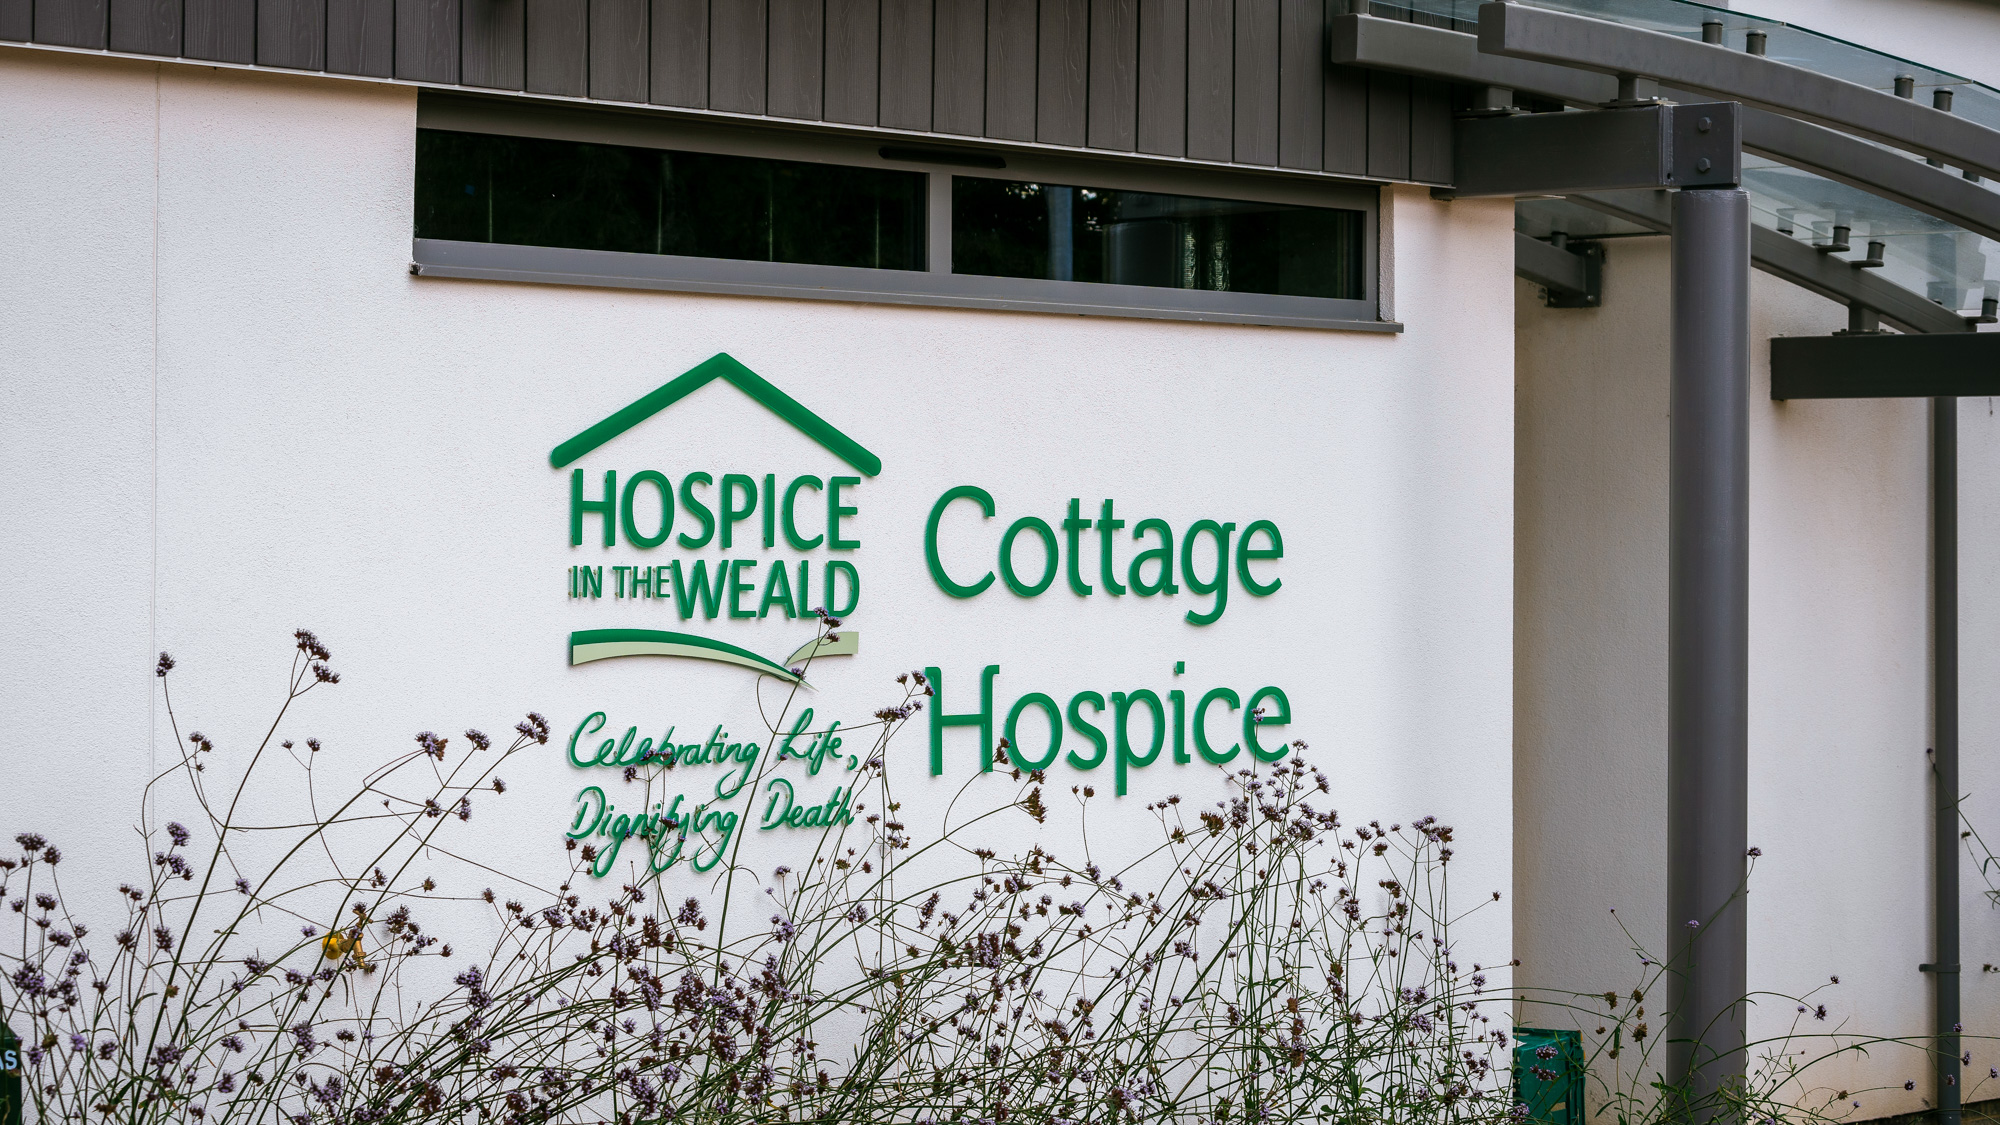 Cottage hospice sign outside our building in Five Ashes